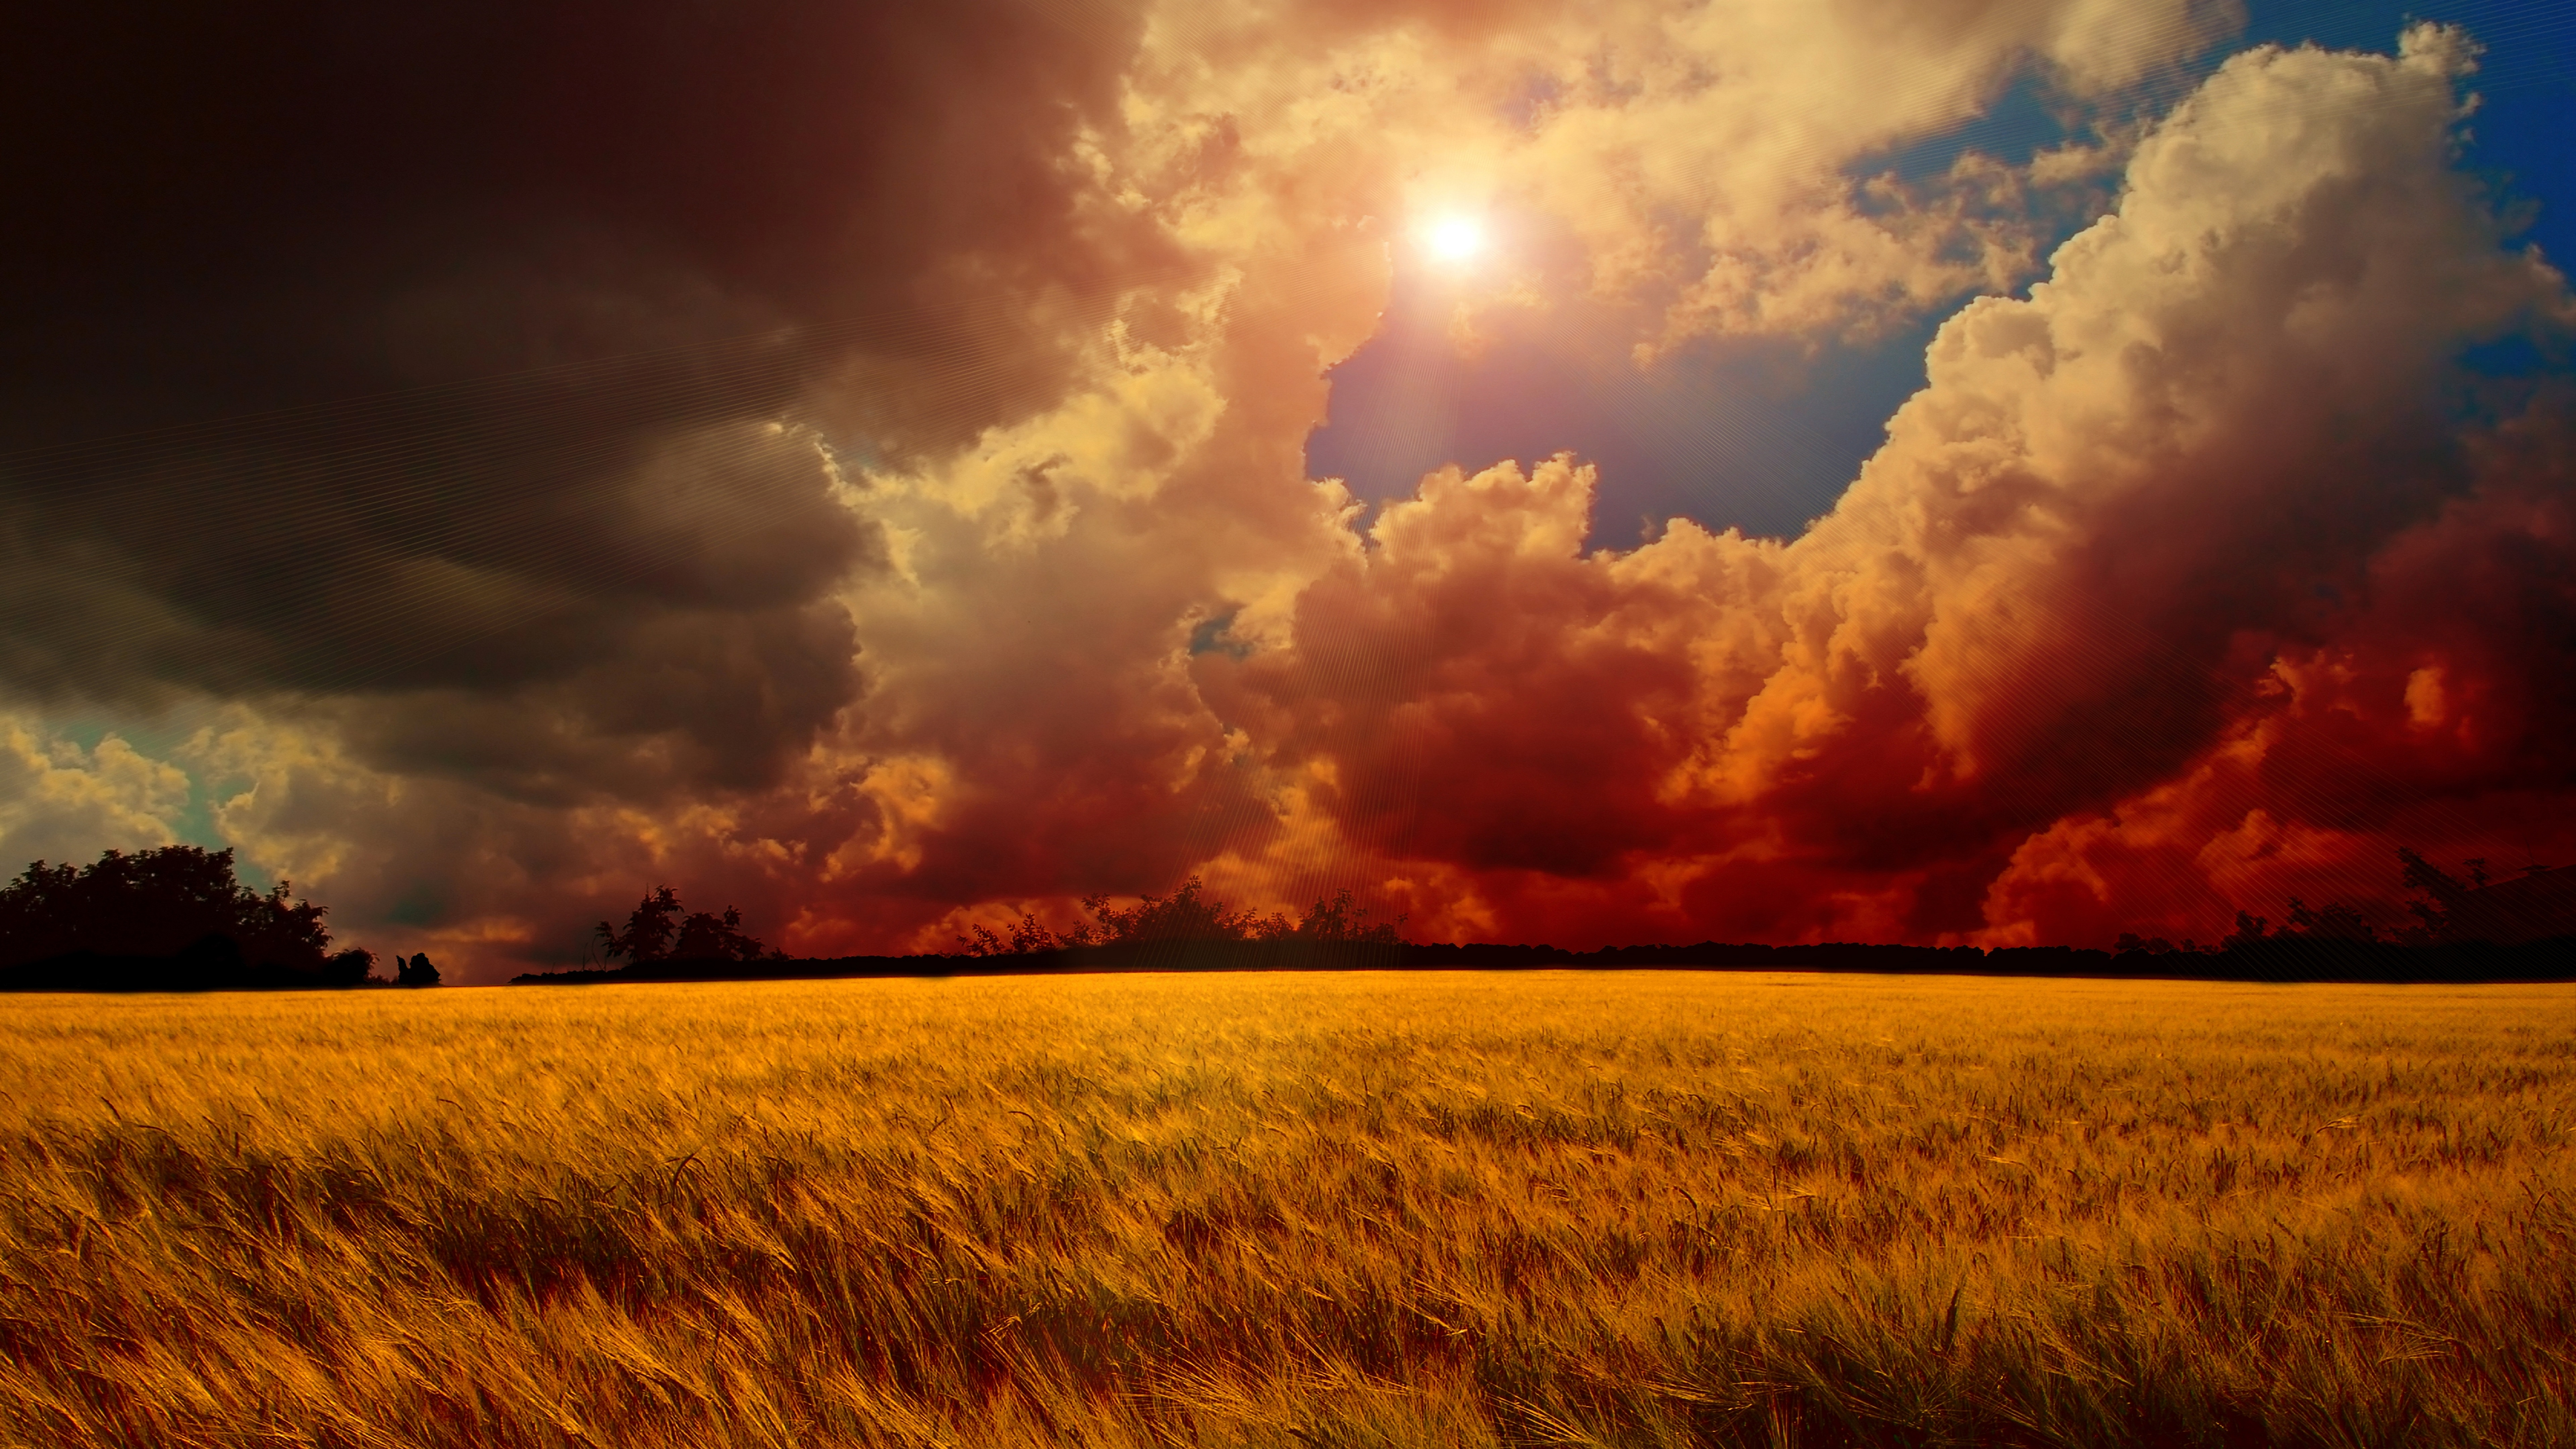 Yellow Wheat Field Nature 8k Ultra Hd Wallpaper Observatory For